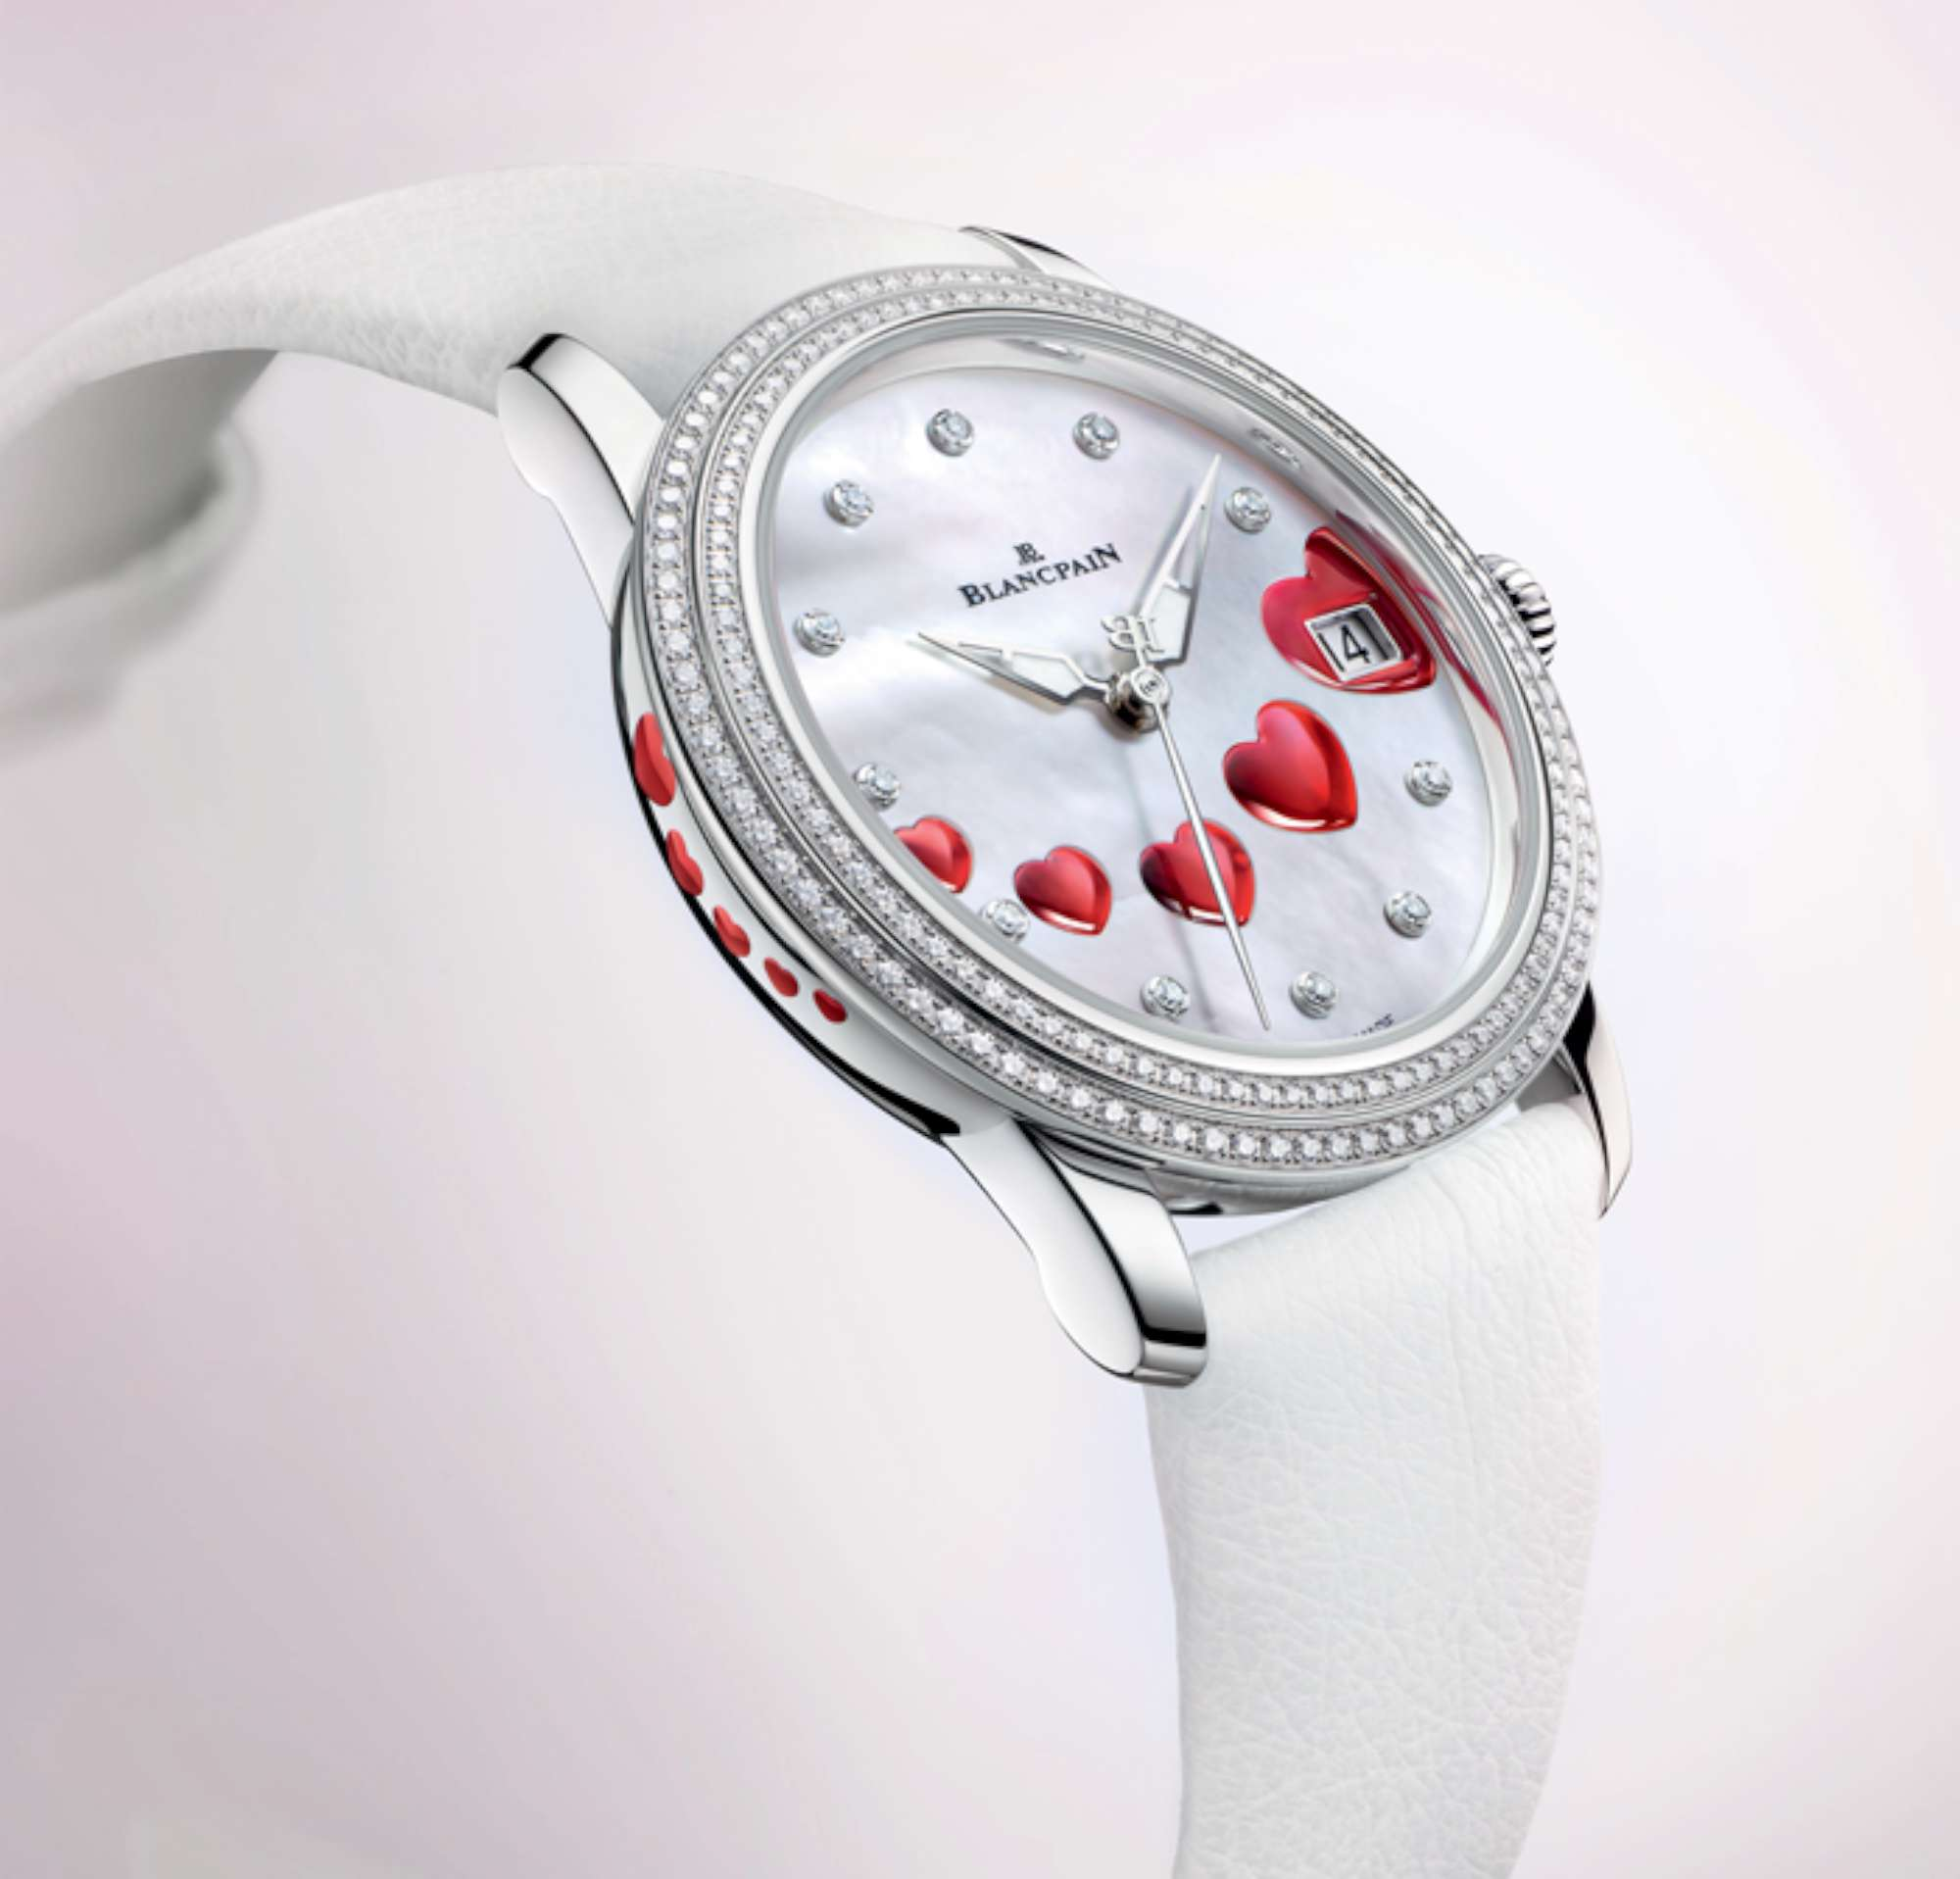 blancpain's rose watch for valentine's day 2015 - time transformed, Ideas